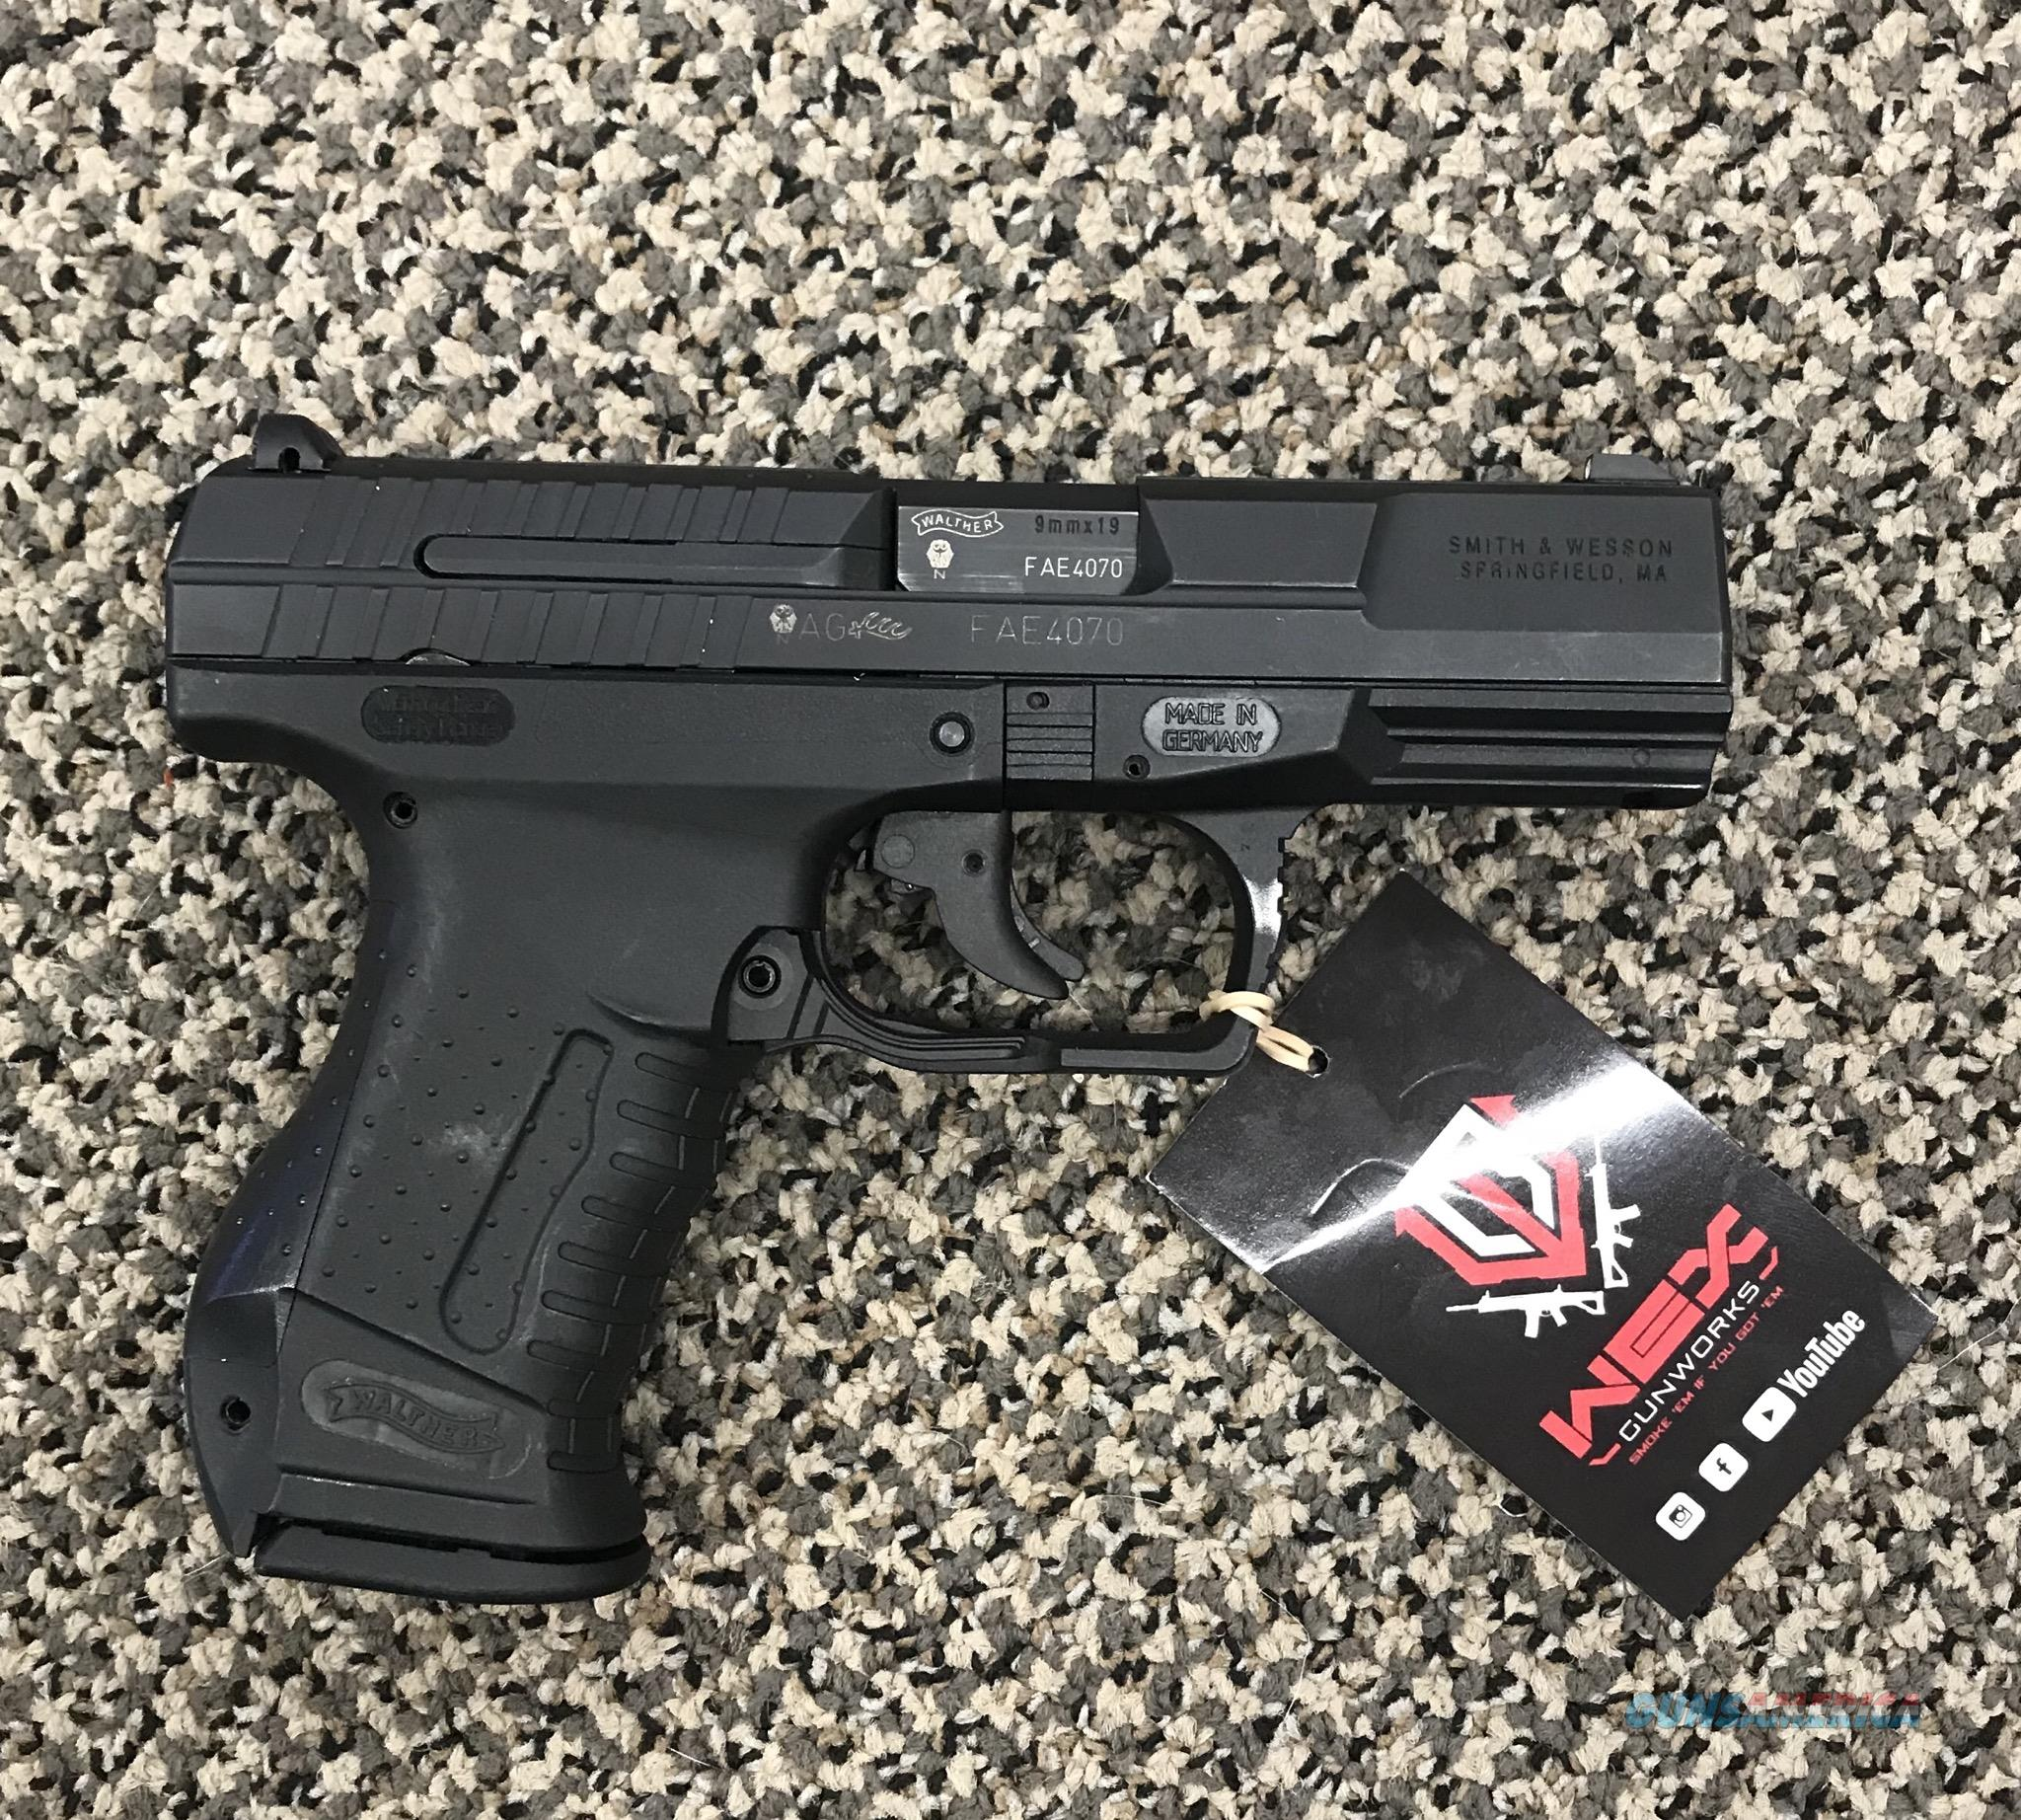 WALTHER P99 DAO 9MM  Guns > Pistols > Walther Pistols > Post WWII > P99/PPQ